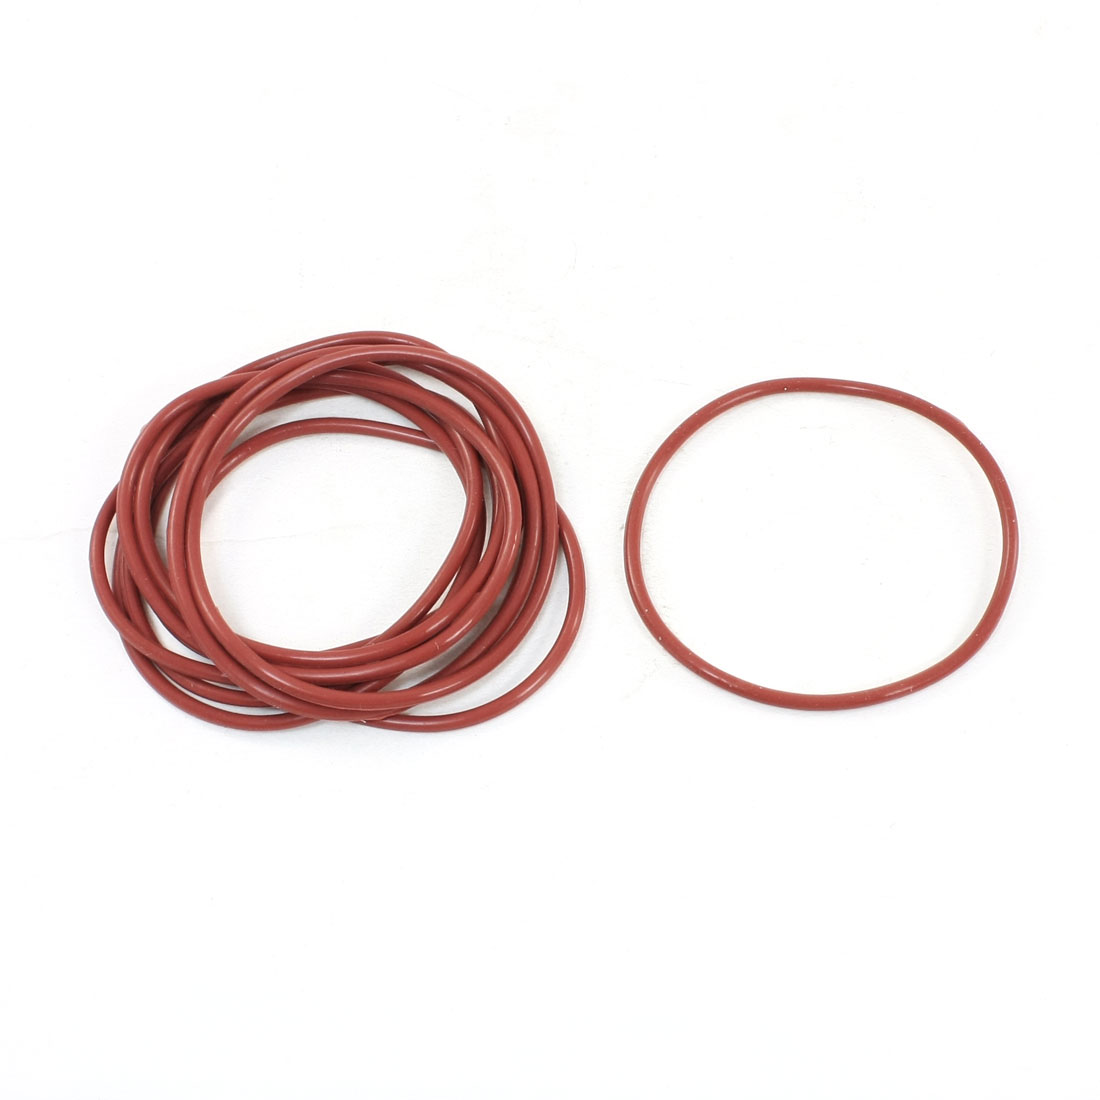 10 Pcs Brick Red O Ring Grommets Oil Sealing Gasket Washer 60mmx2.5mm